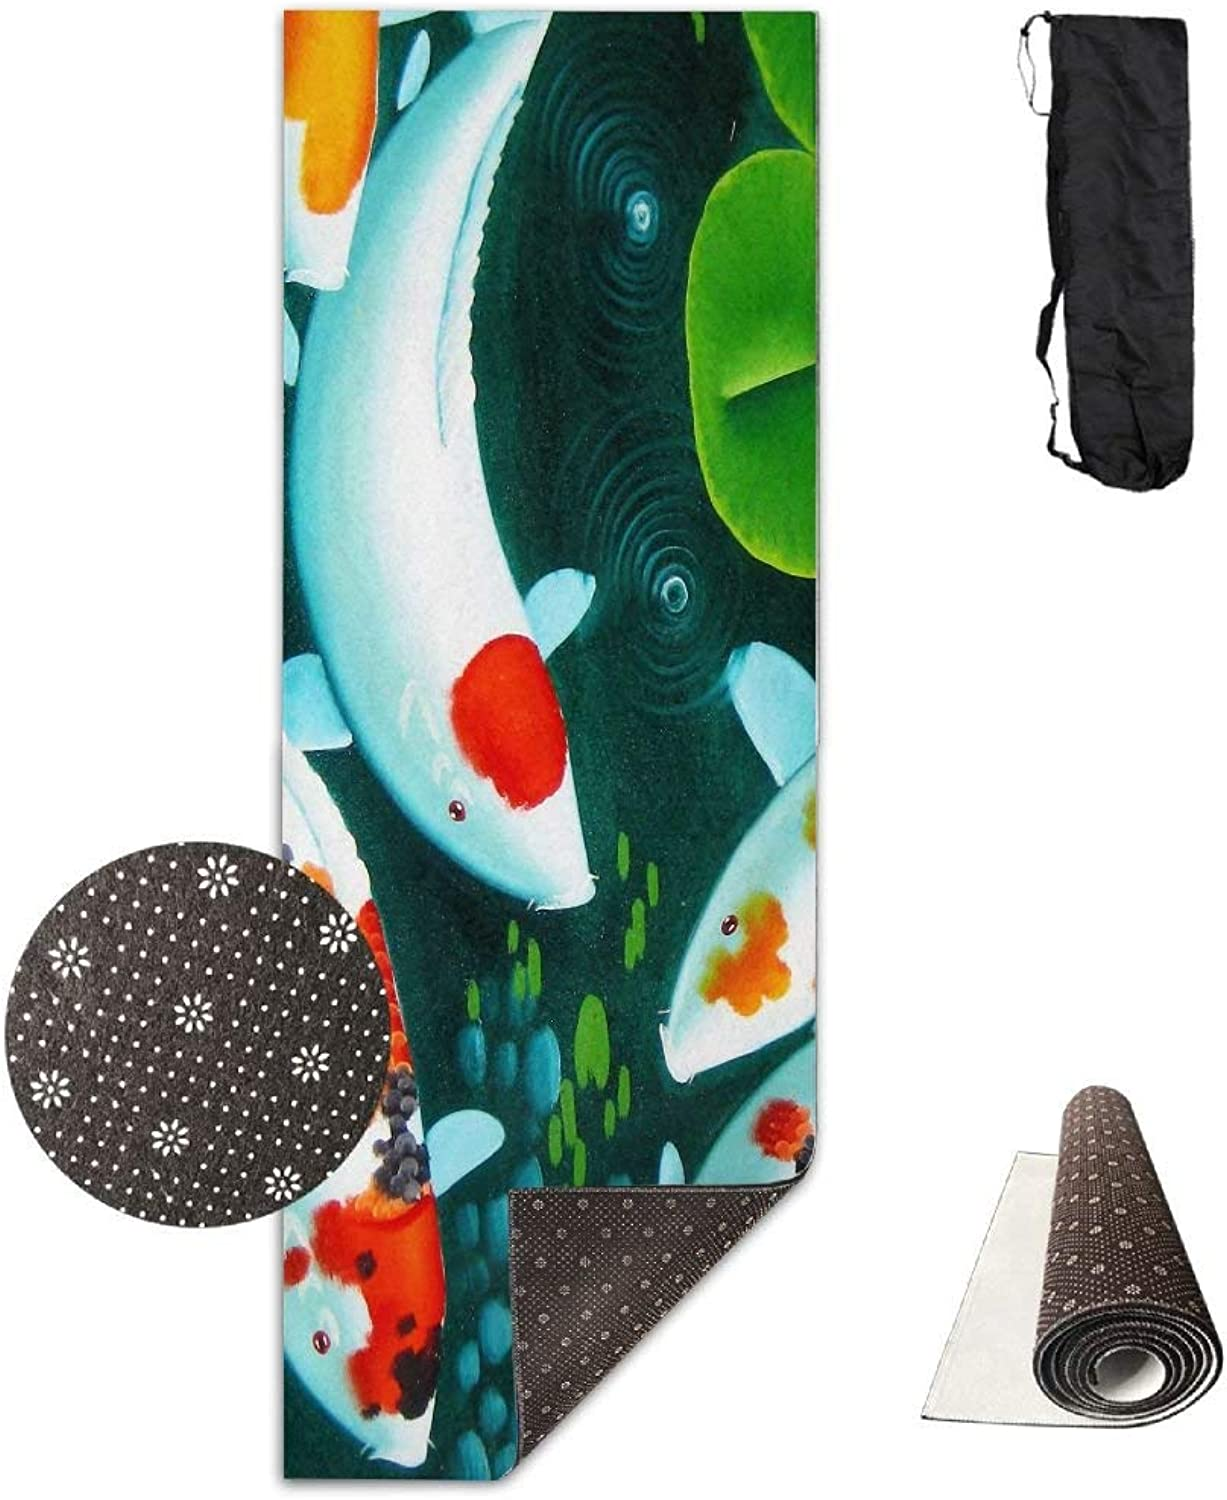 colorful Carp Painting Deluxe Yoga Mat Aerobic Exercise Pilates